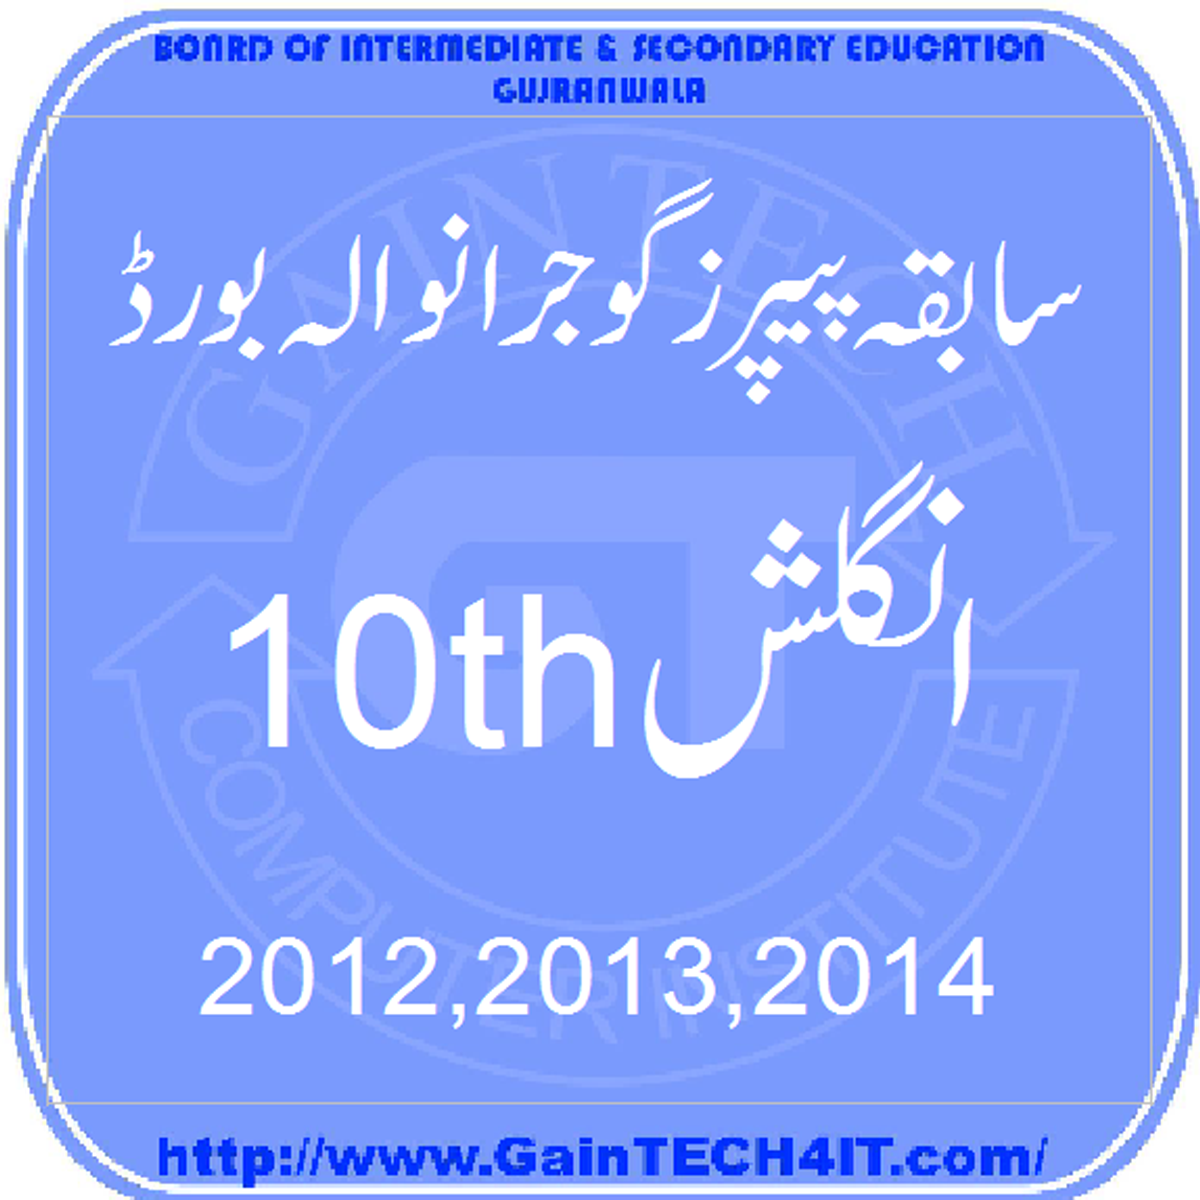 Uptodate English Annual 2012 to 2014 - GainTECH4IT